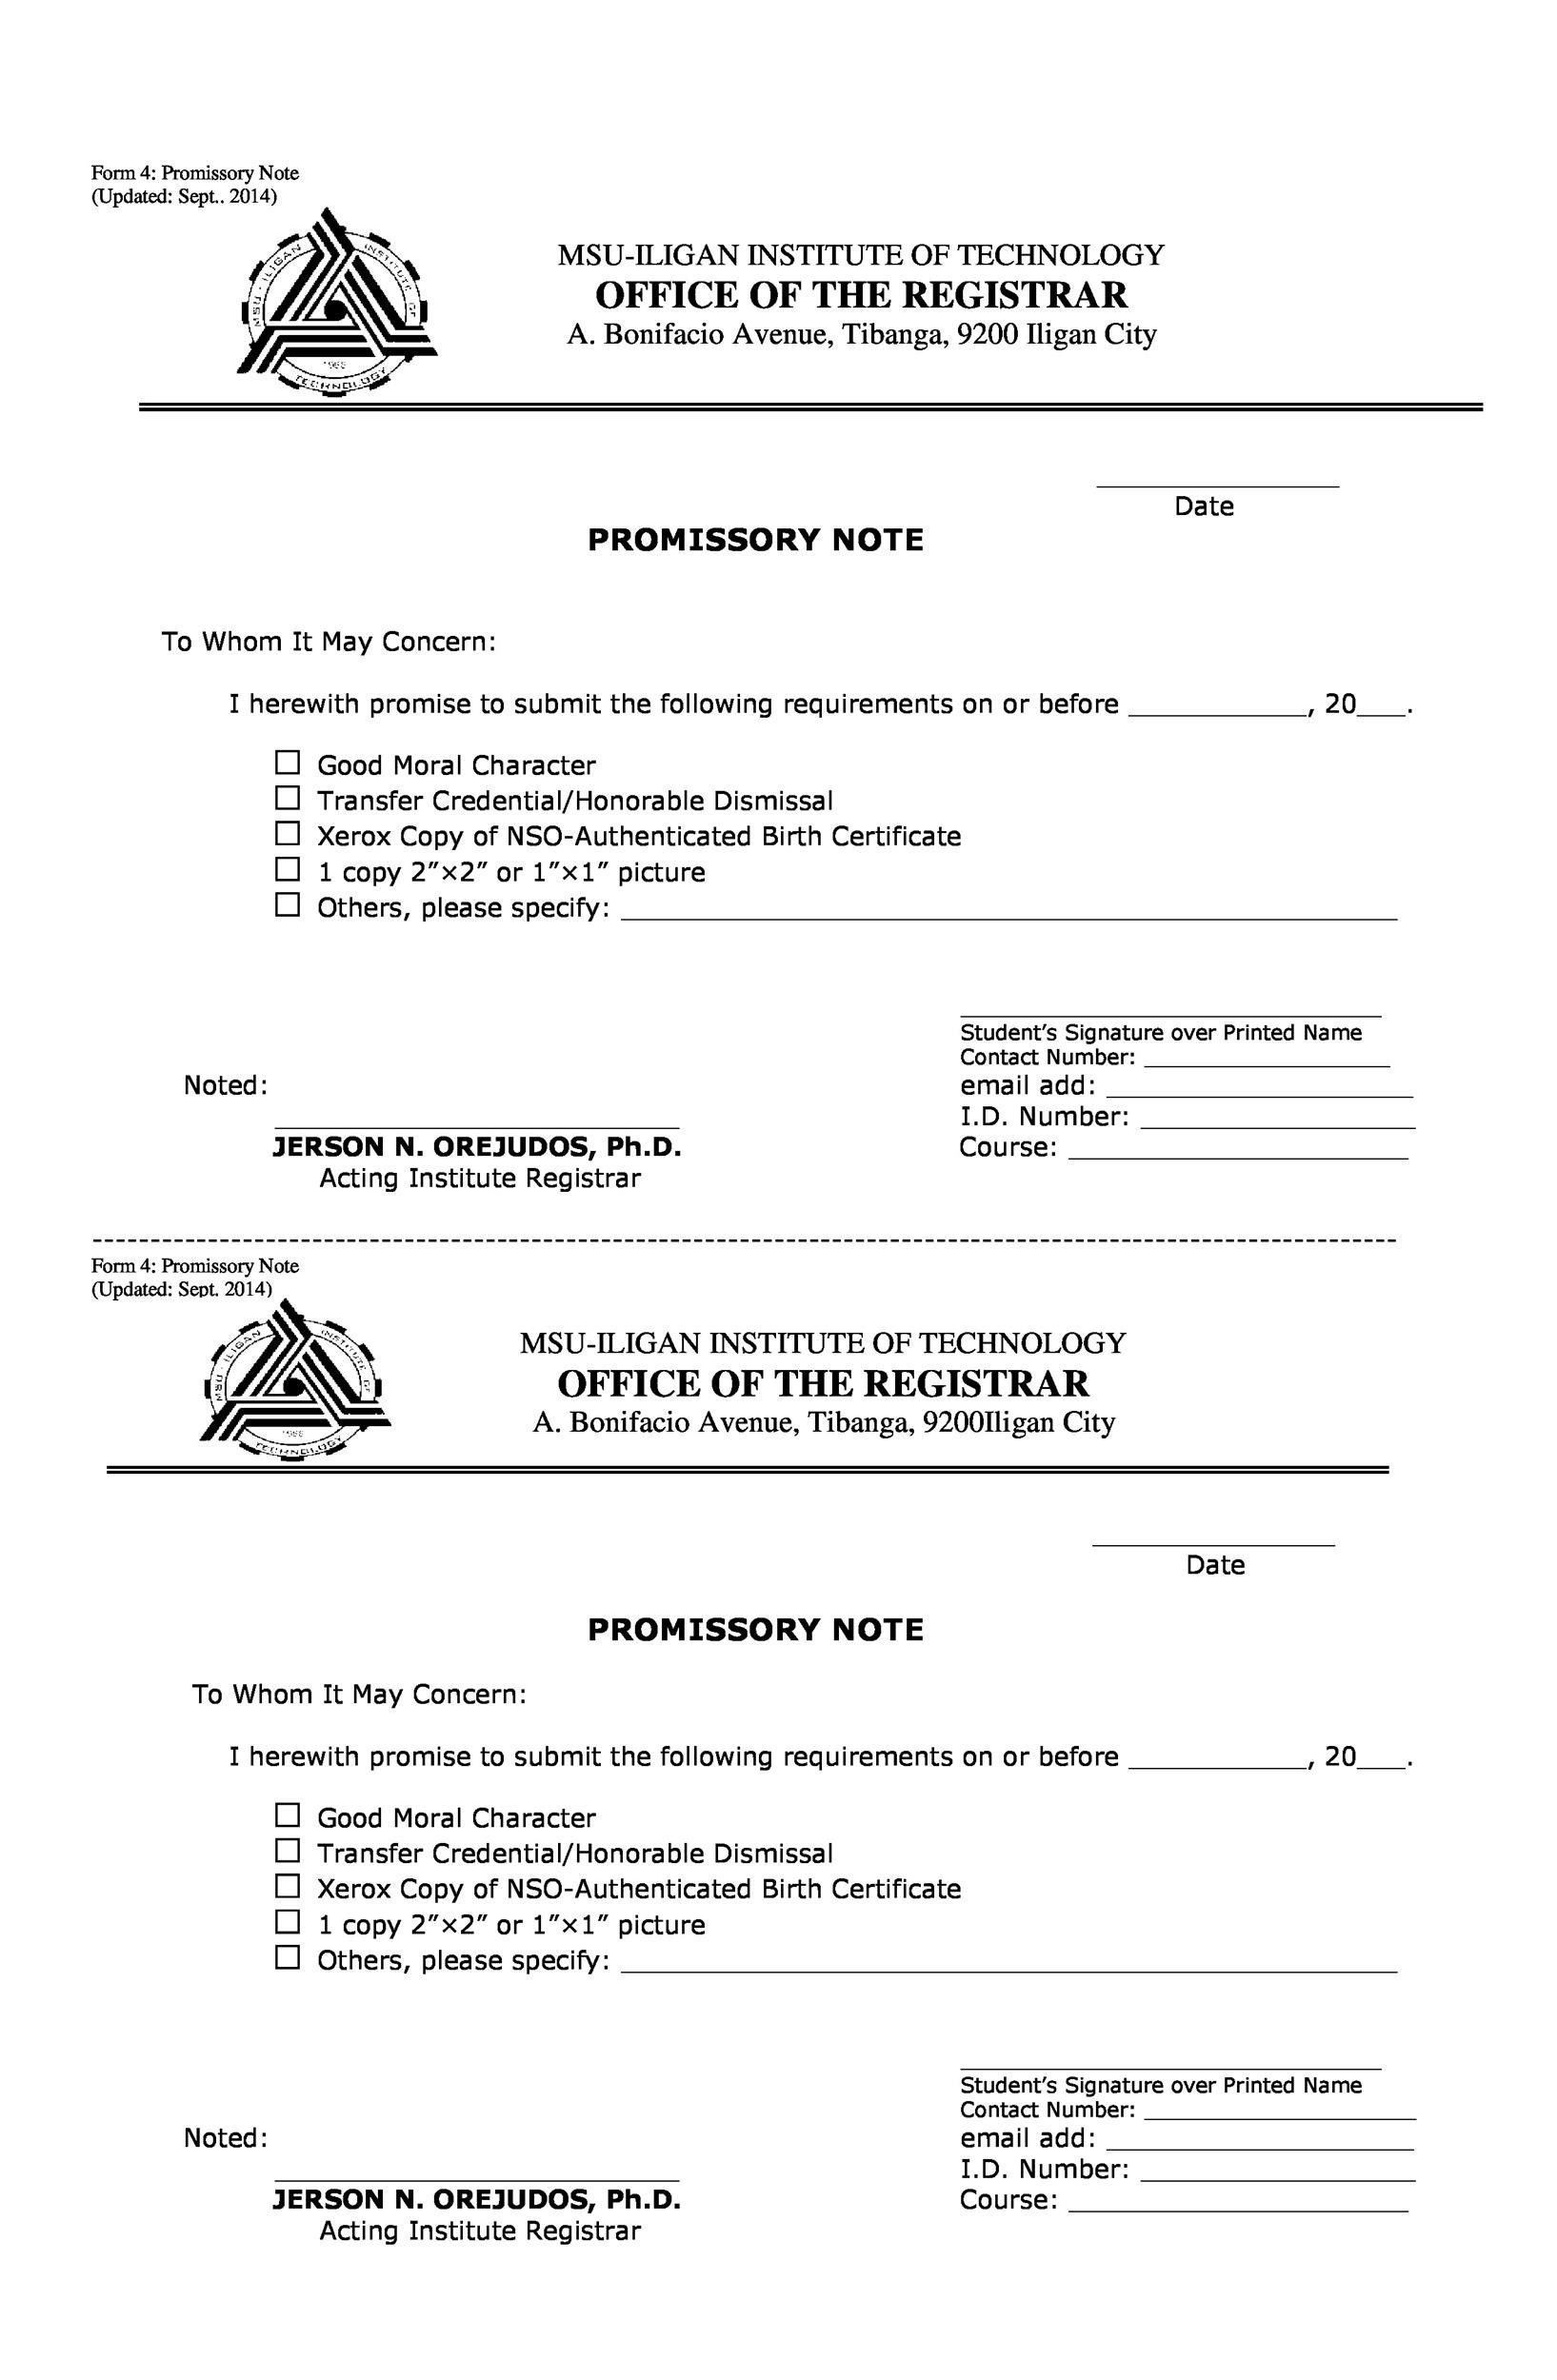 Printable Promissory Note Template 09  Printable Promissory Note